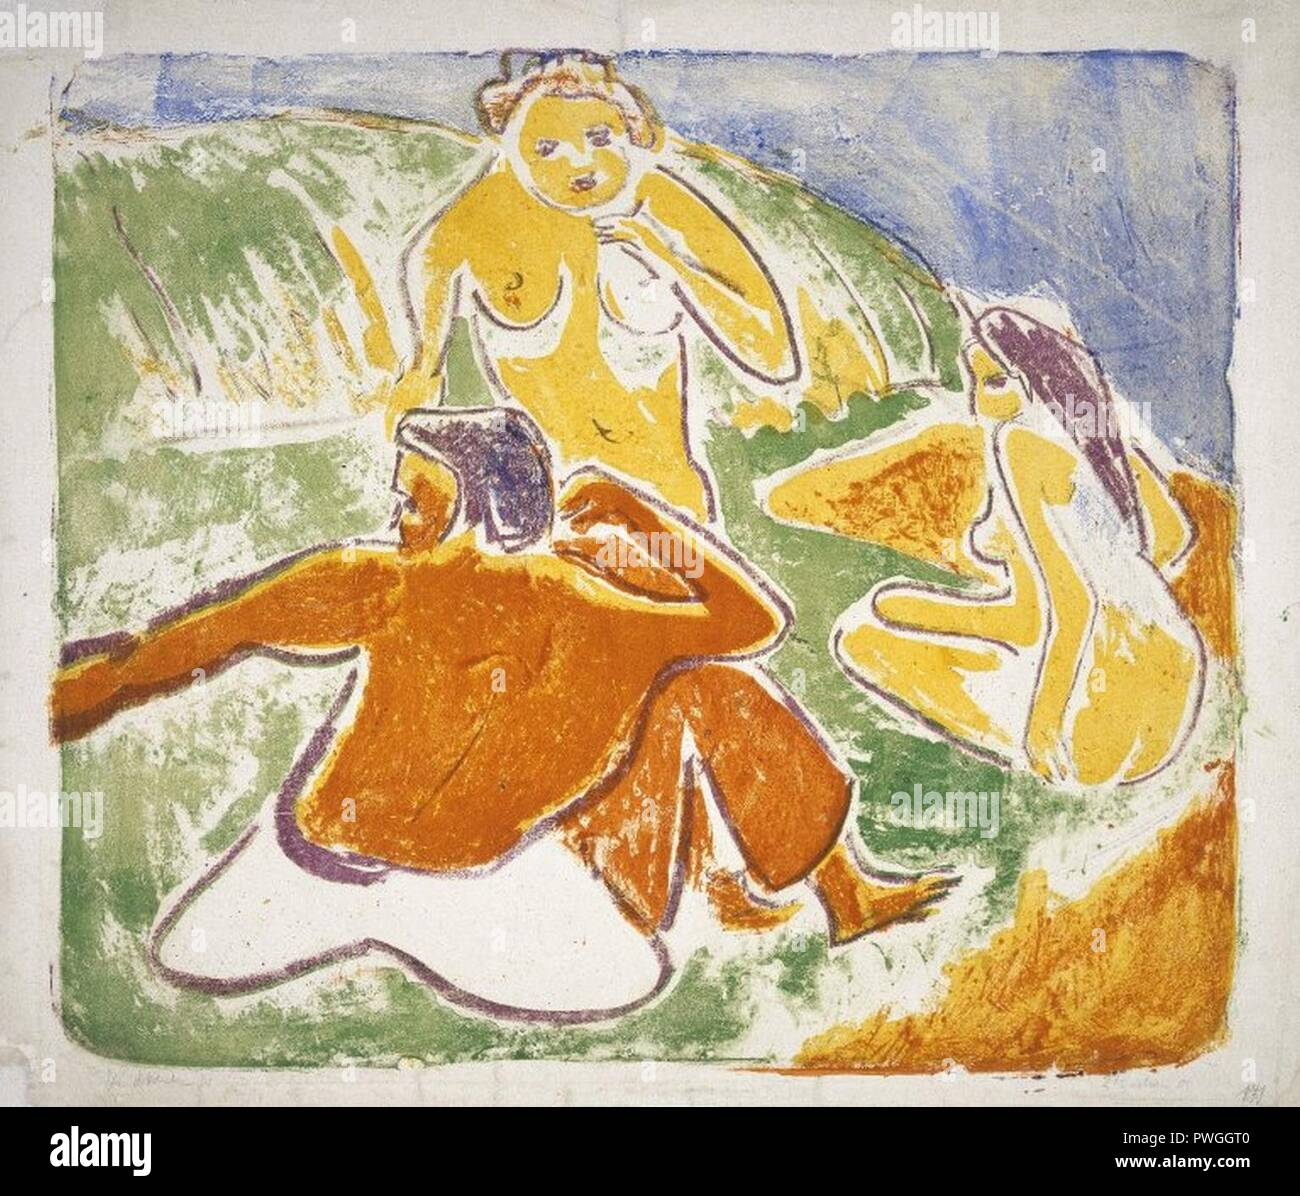 Three Bathers on the Beach - Ernst Ludwig Kirchner. - Stock Image